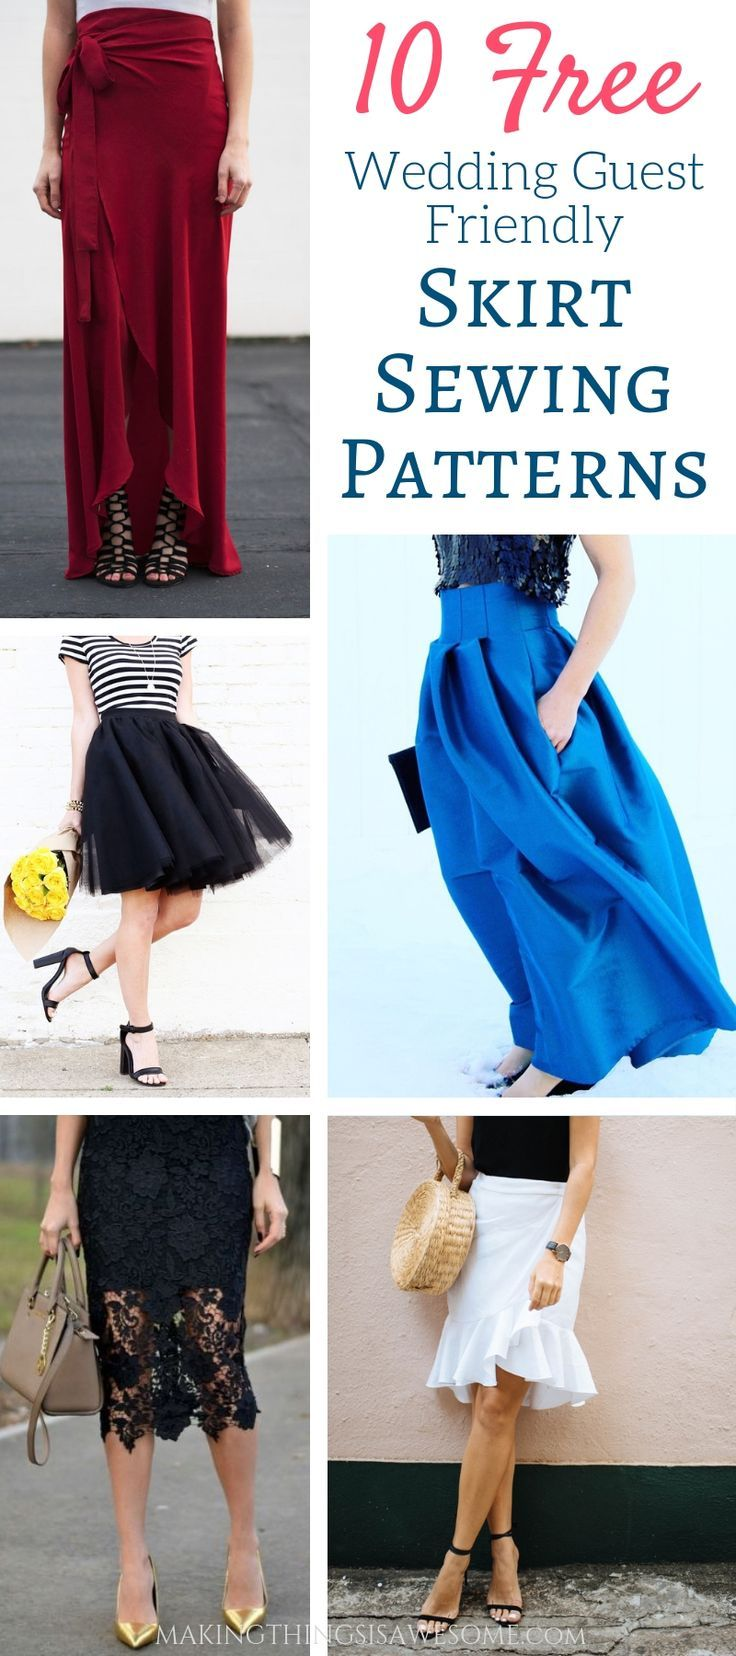 10 Free Wedding Guest Friendly Skirt Sewing Patterns Makingthingsisawesome Com Freesewingpatterns S Diy Skirt Skirt Patterns Sewing Dress Sewing Tutorials [ 1656 x 736 Pixel ]